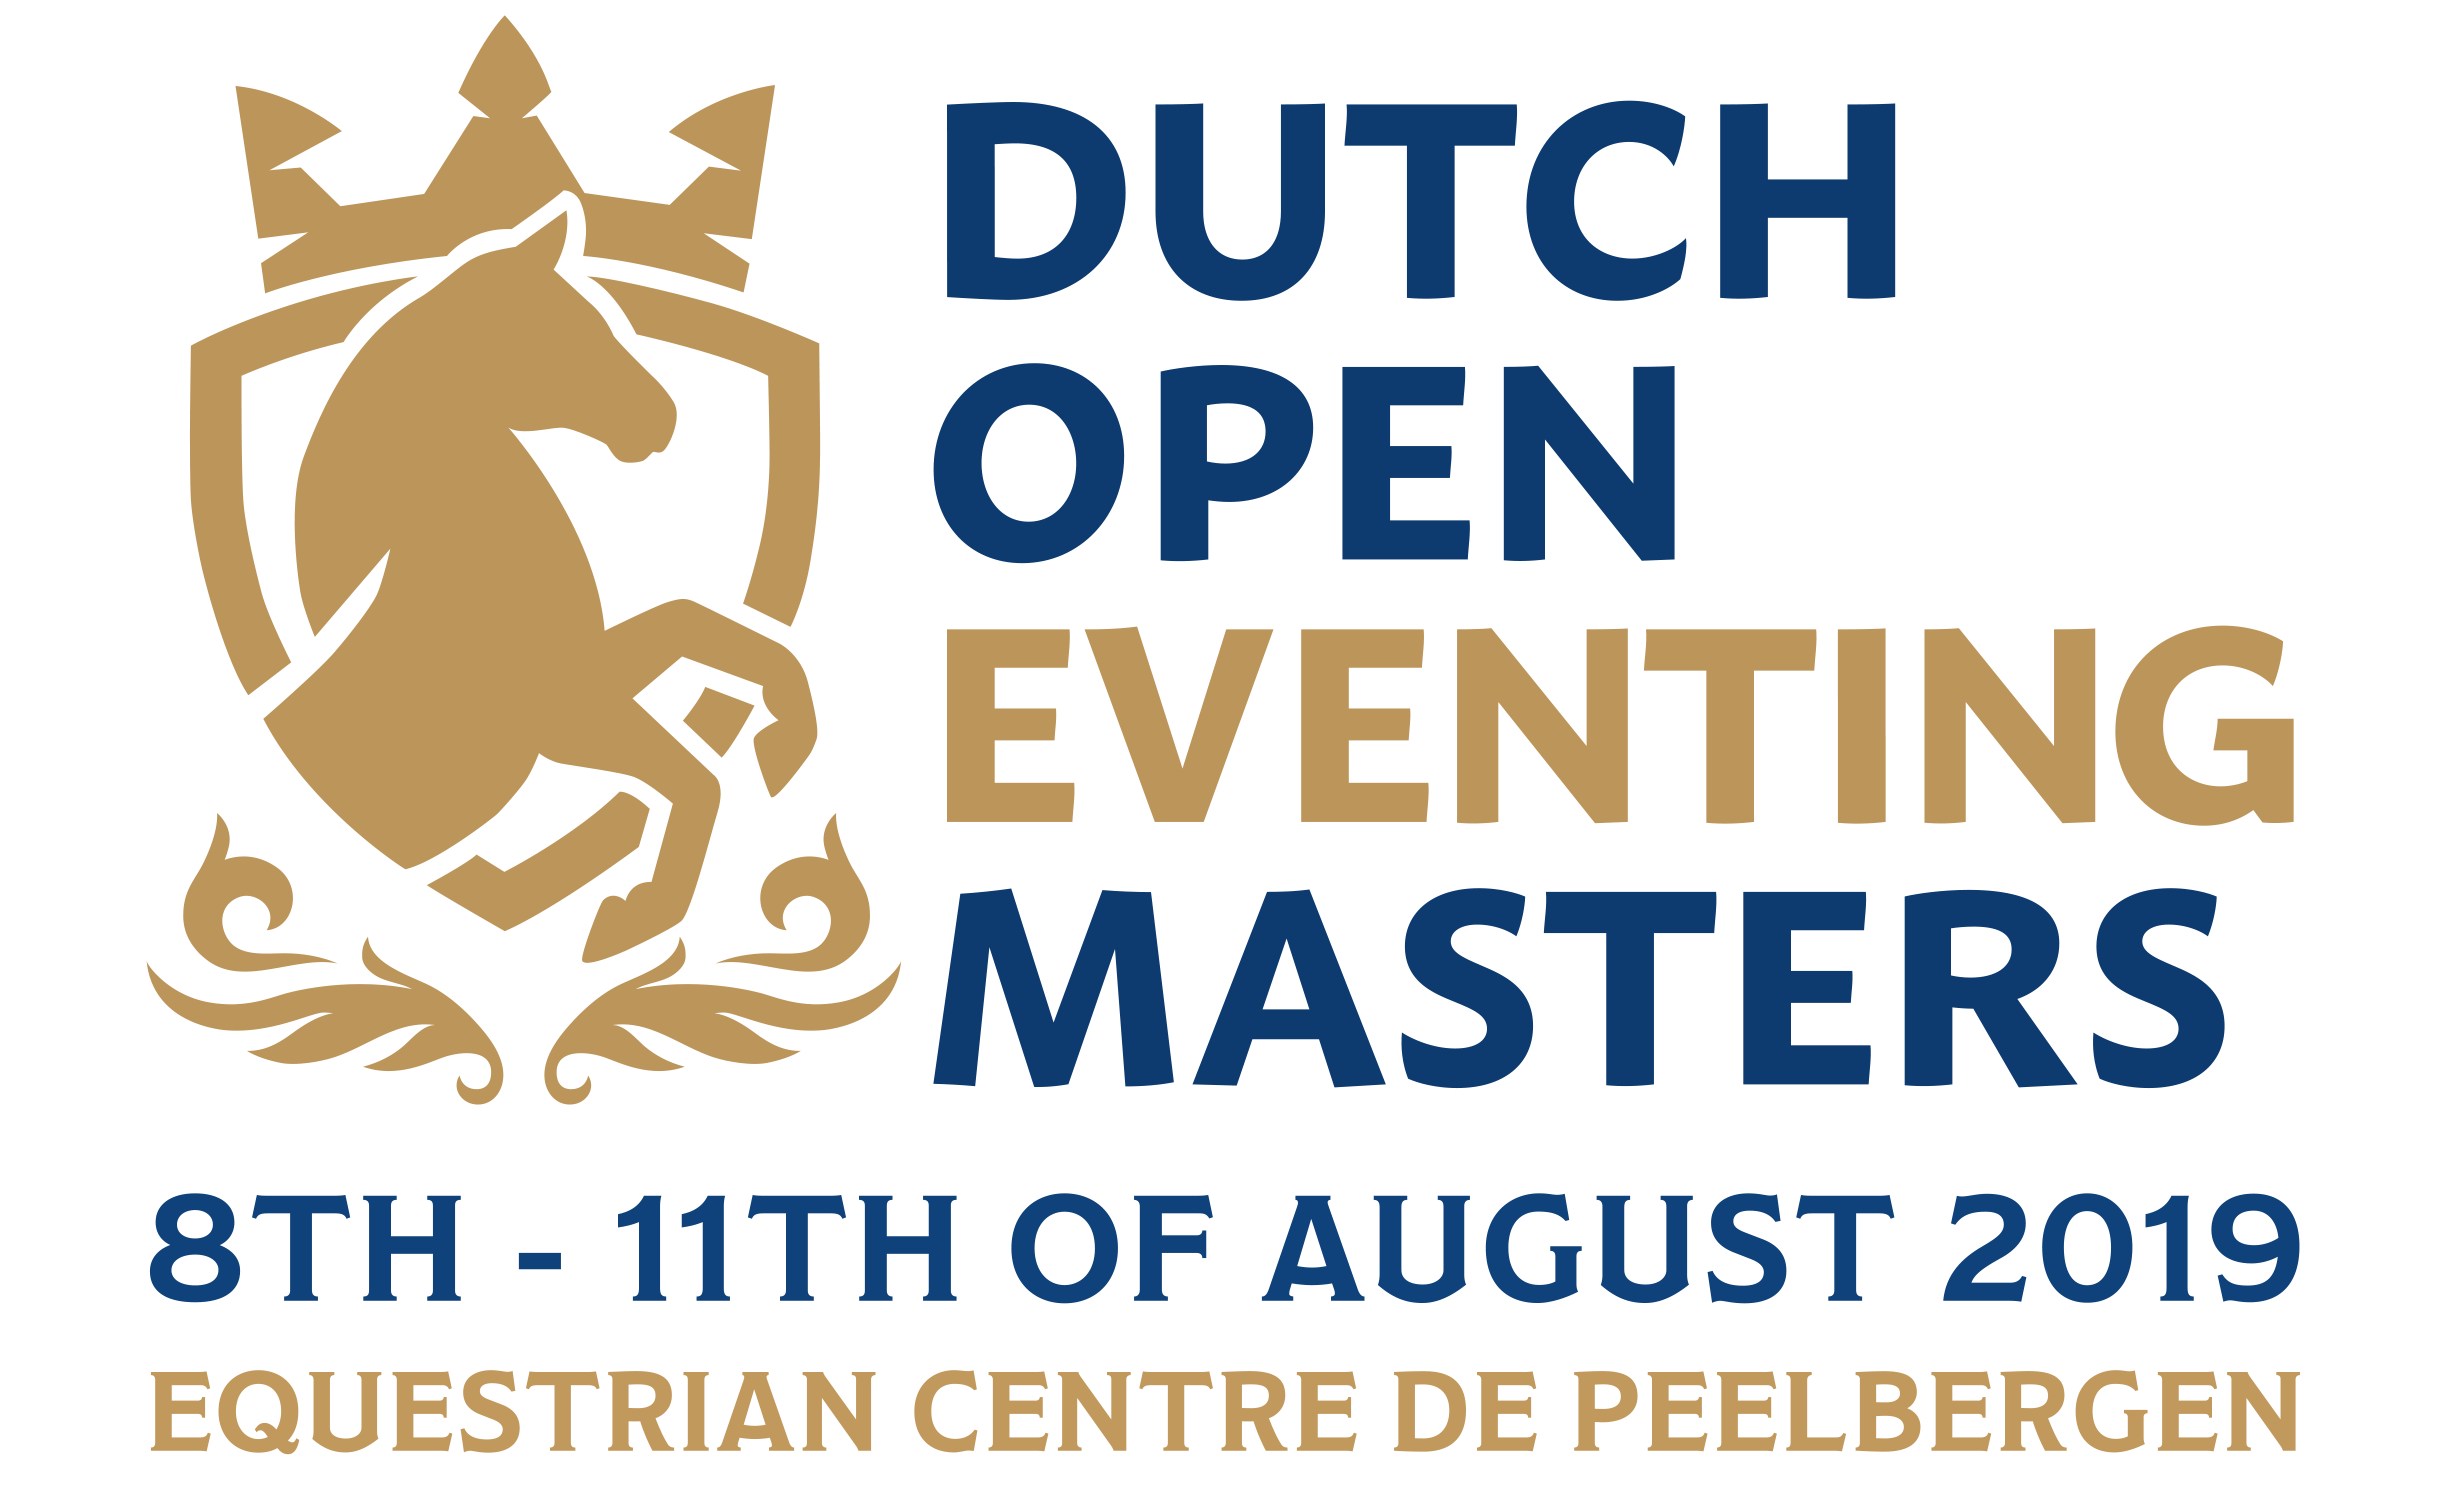 Dutch Open Eventing Masters